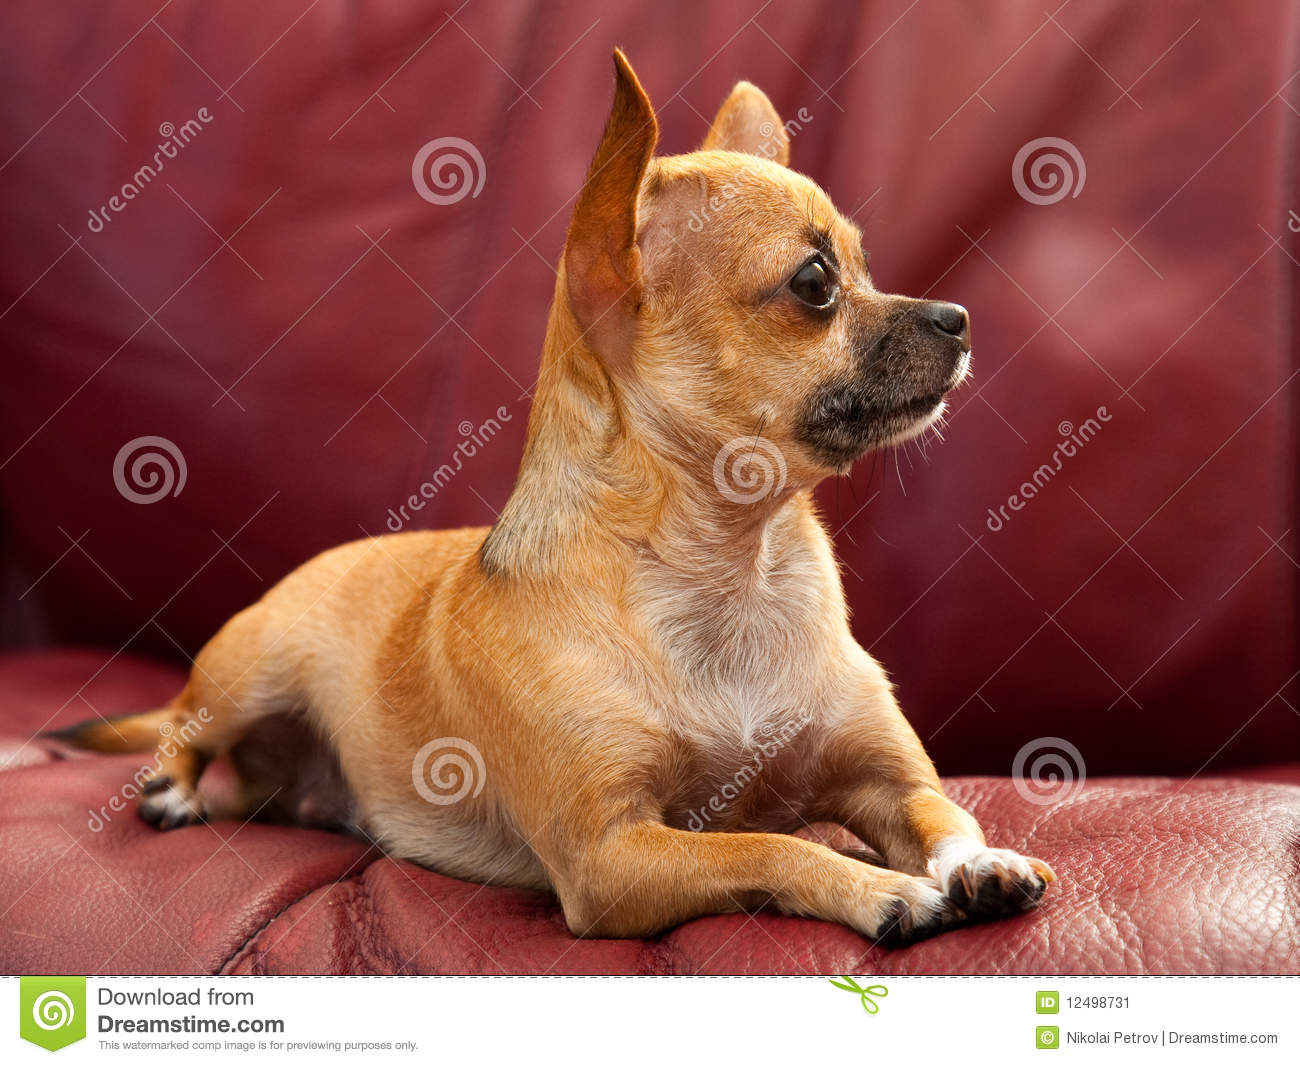 Cute Tiny Chihuahua Dog On A Red Couch Stock Image Image